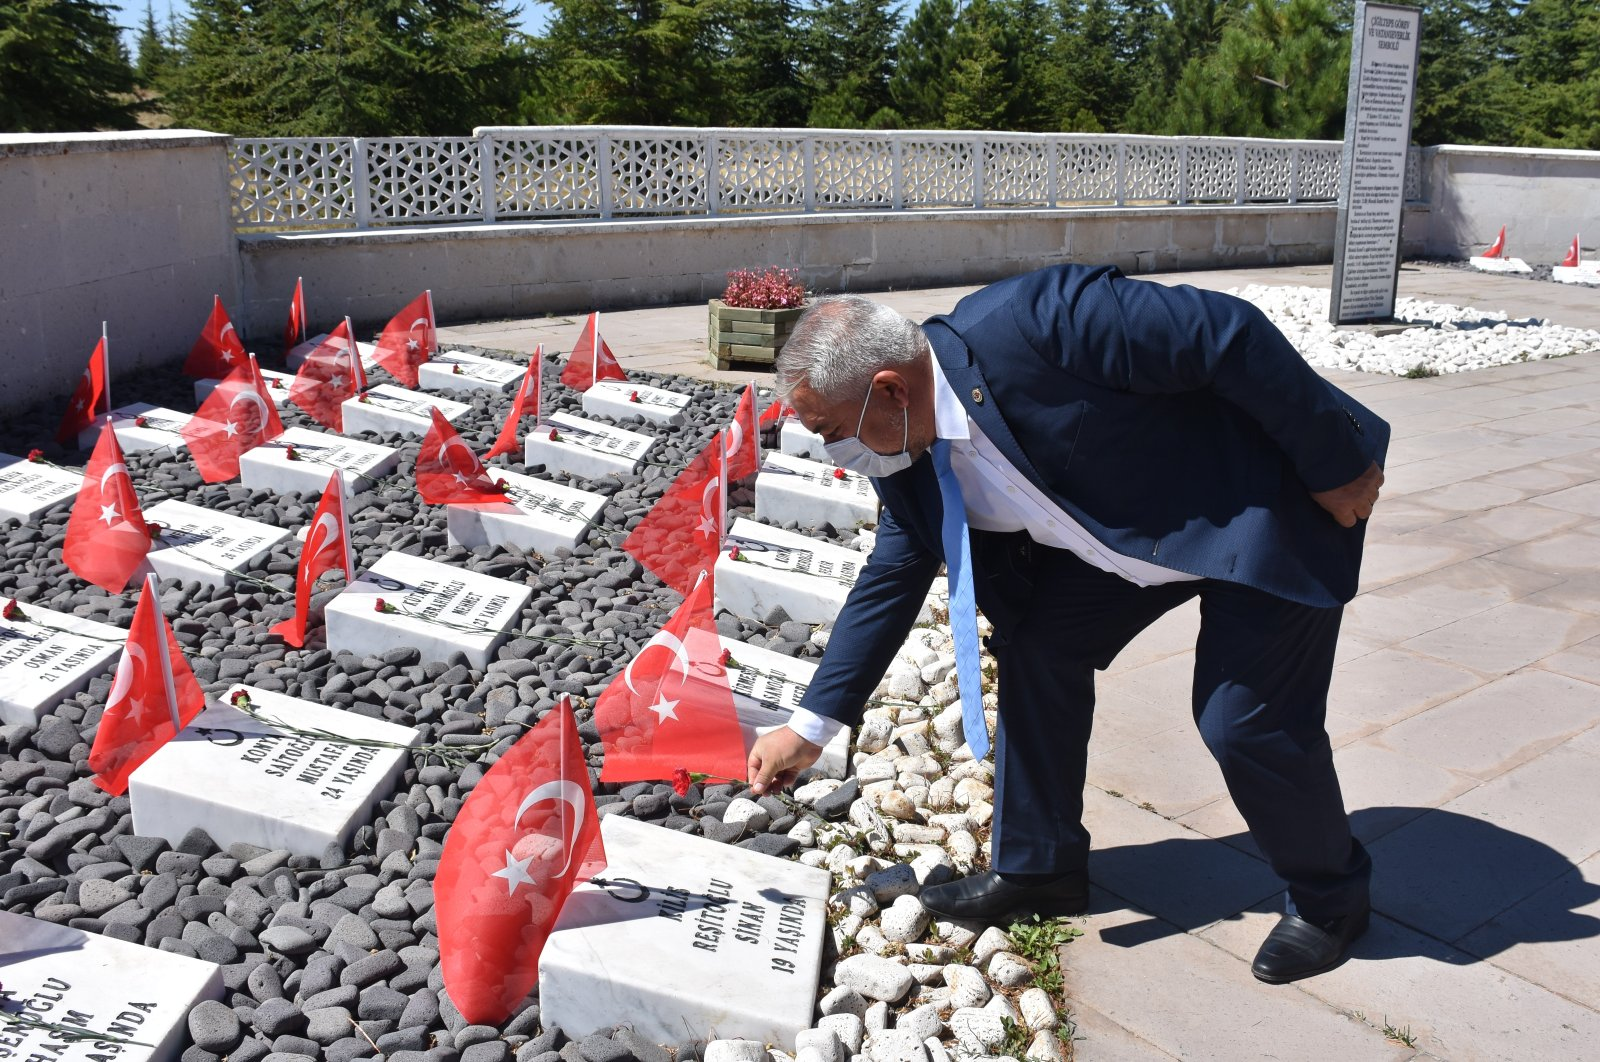 A man leaves flowers at the graves of soldiers slain in the Great Offensive, in Afyonkarahisar, western Turkey, Aug. 27, 2020. (AA Photo)